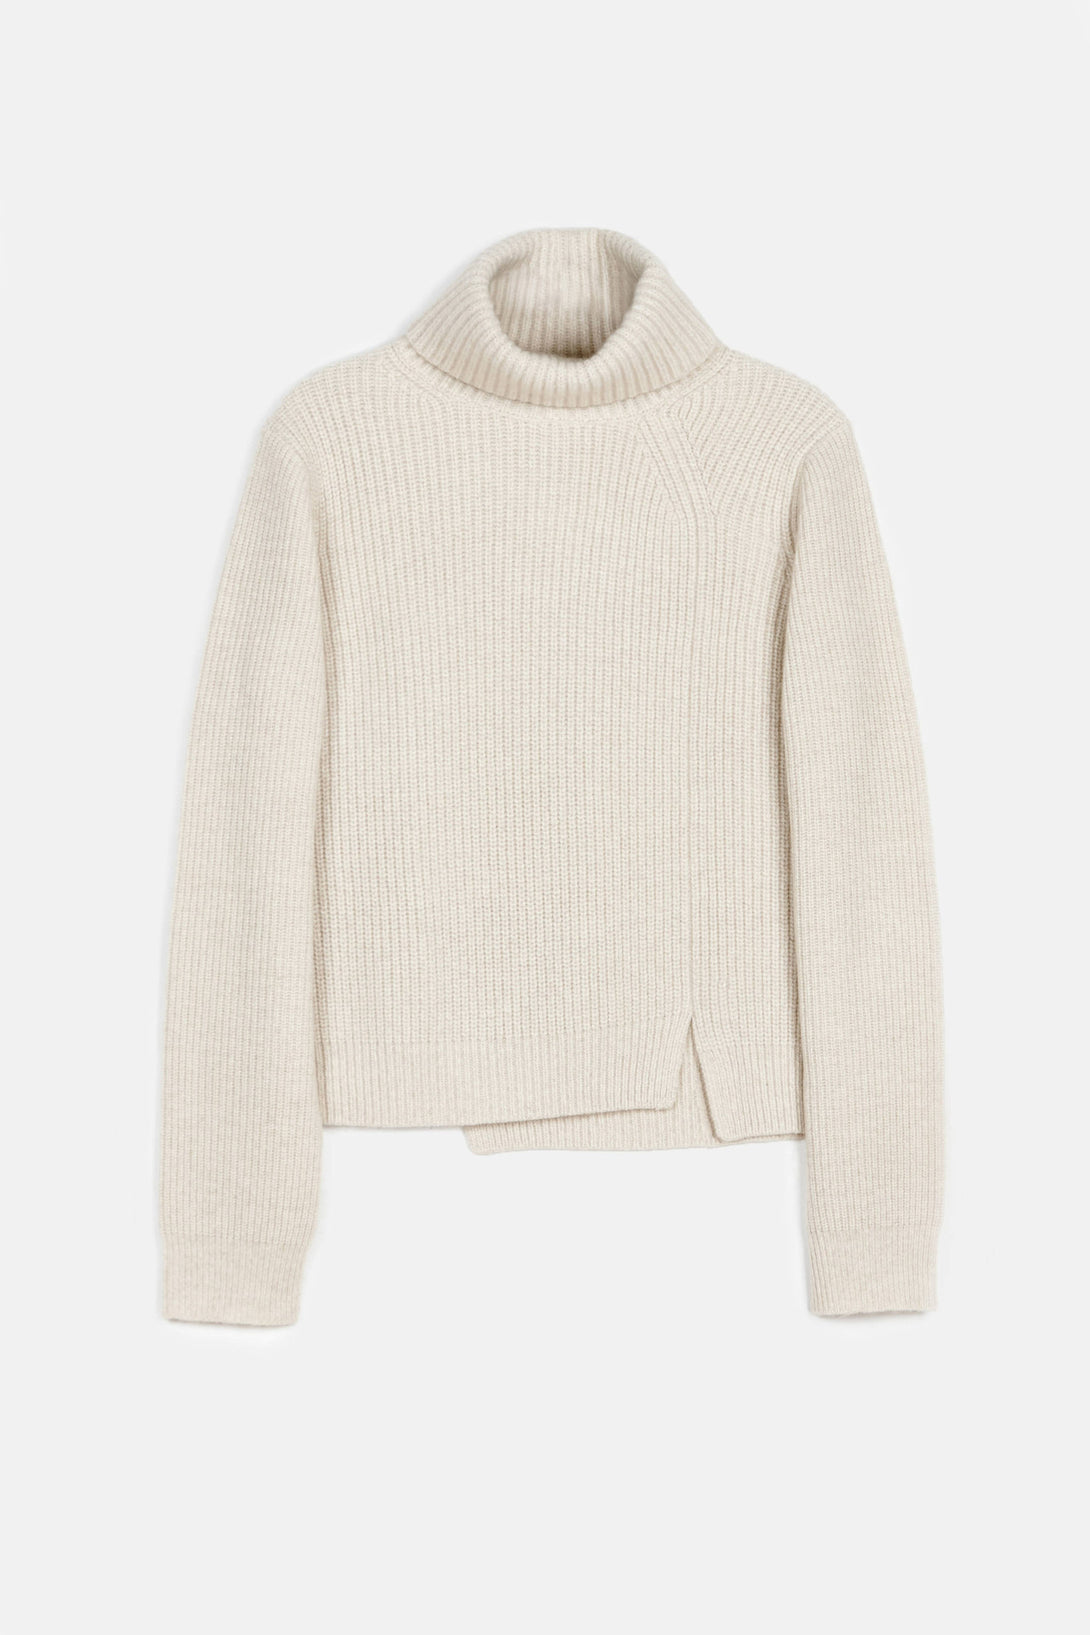 Wool-Cashmere Rib LS Step Hem Turtleneck Sweater - Oatmeal